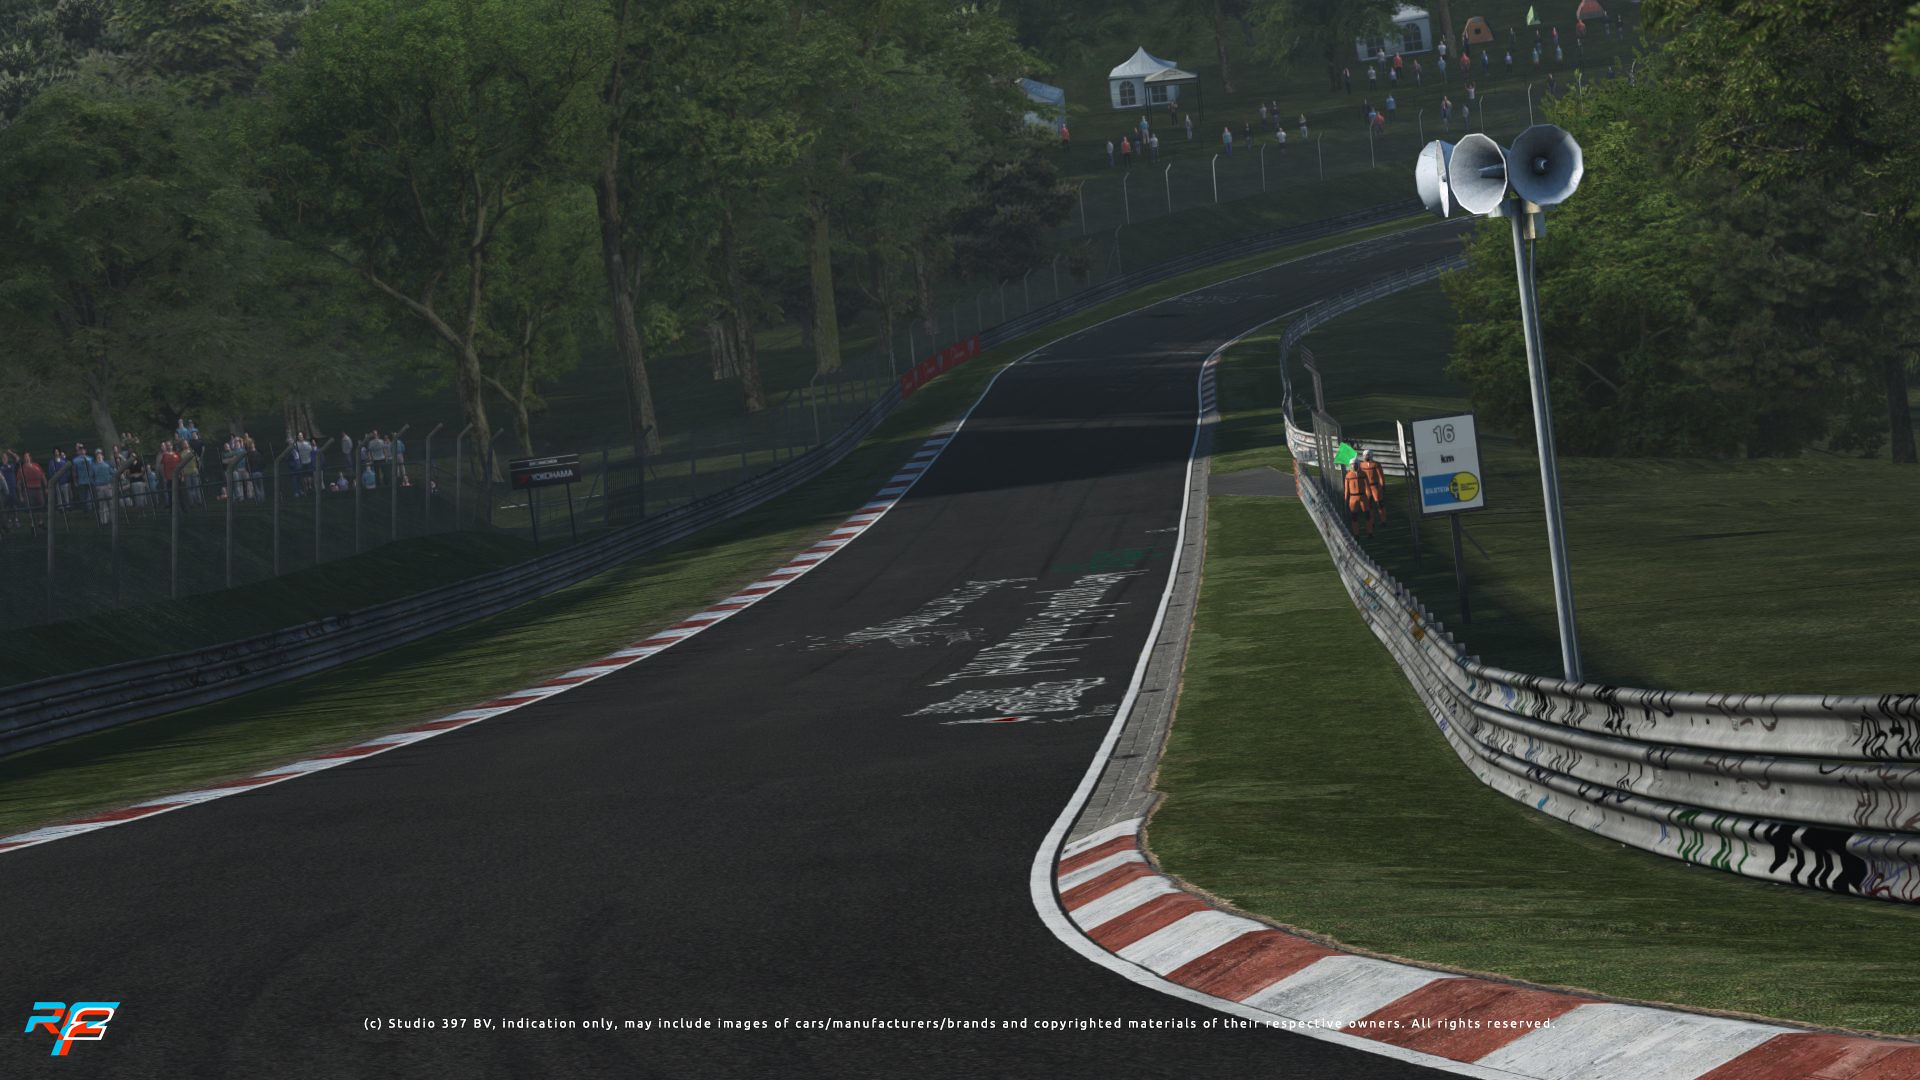 nordschleife_guide_25-1920x1080